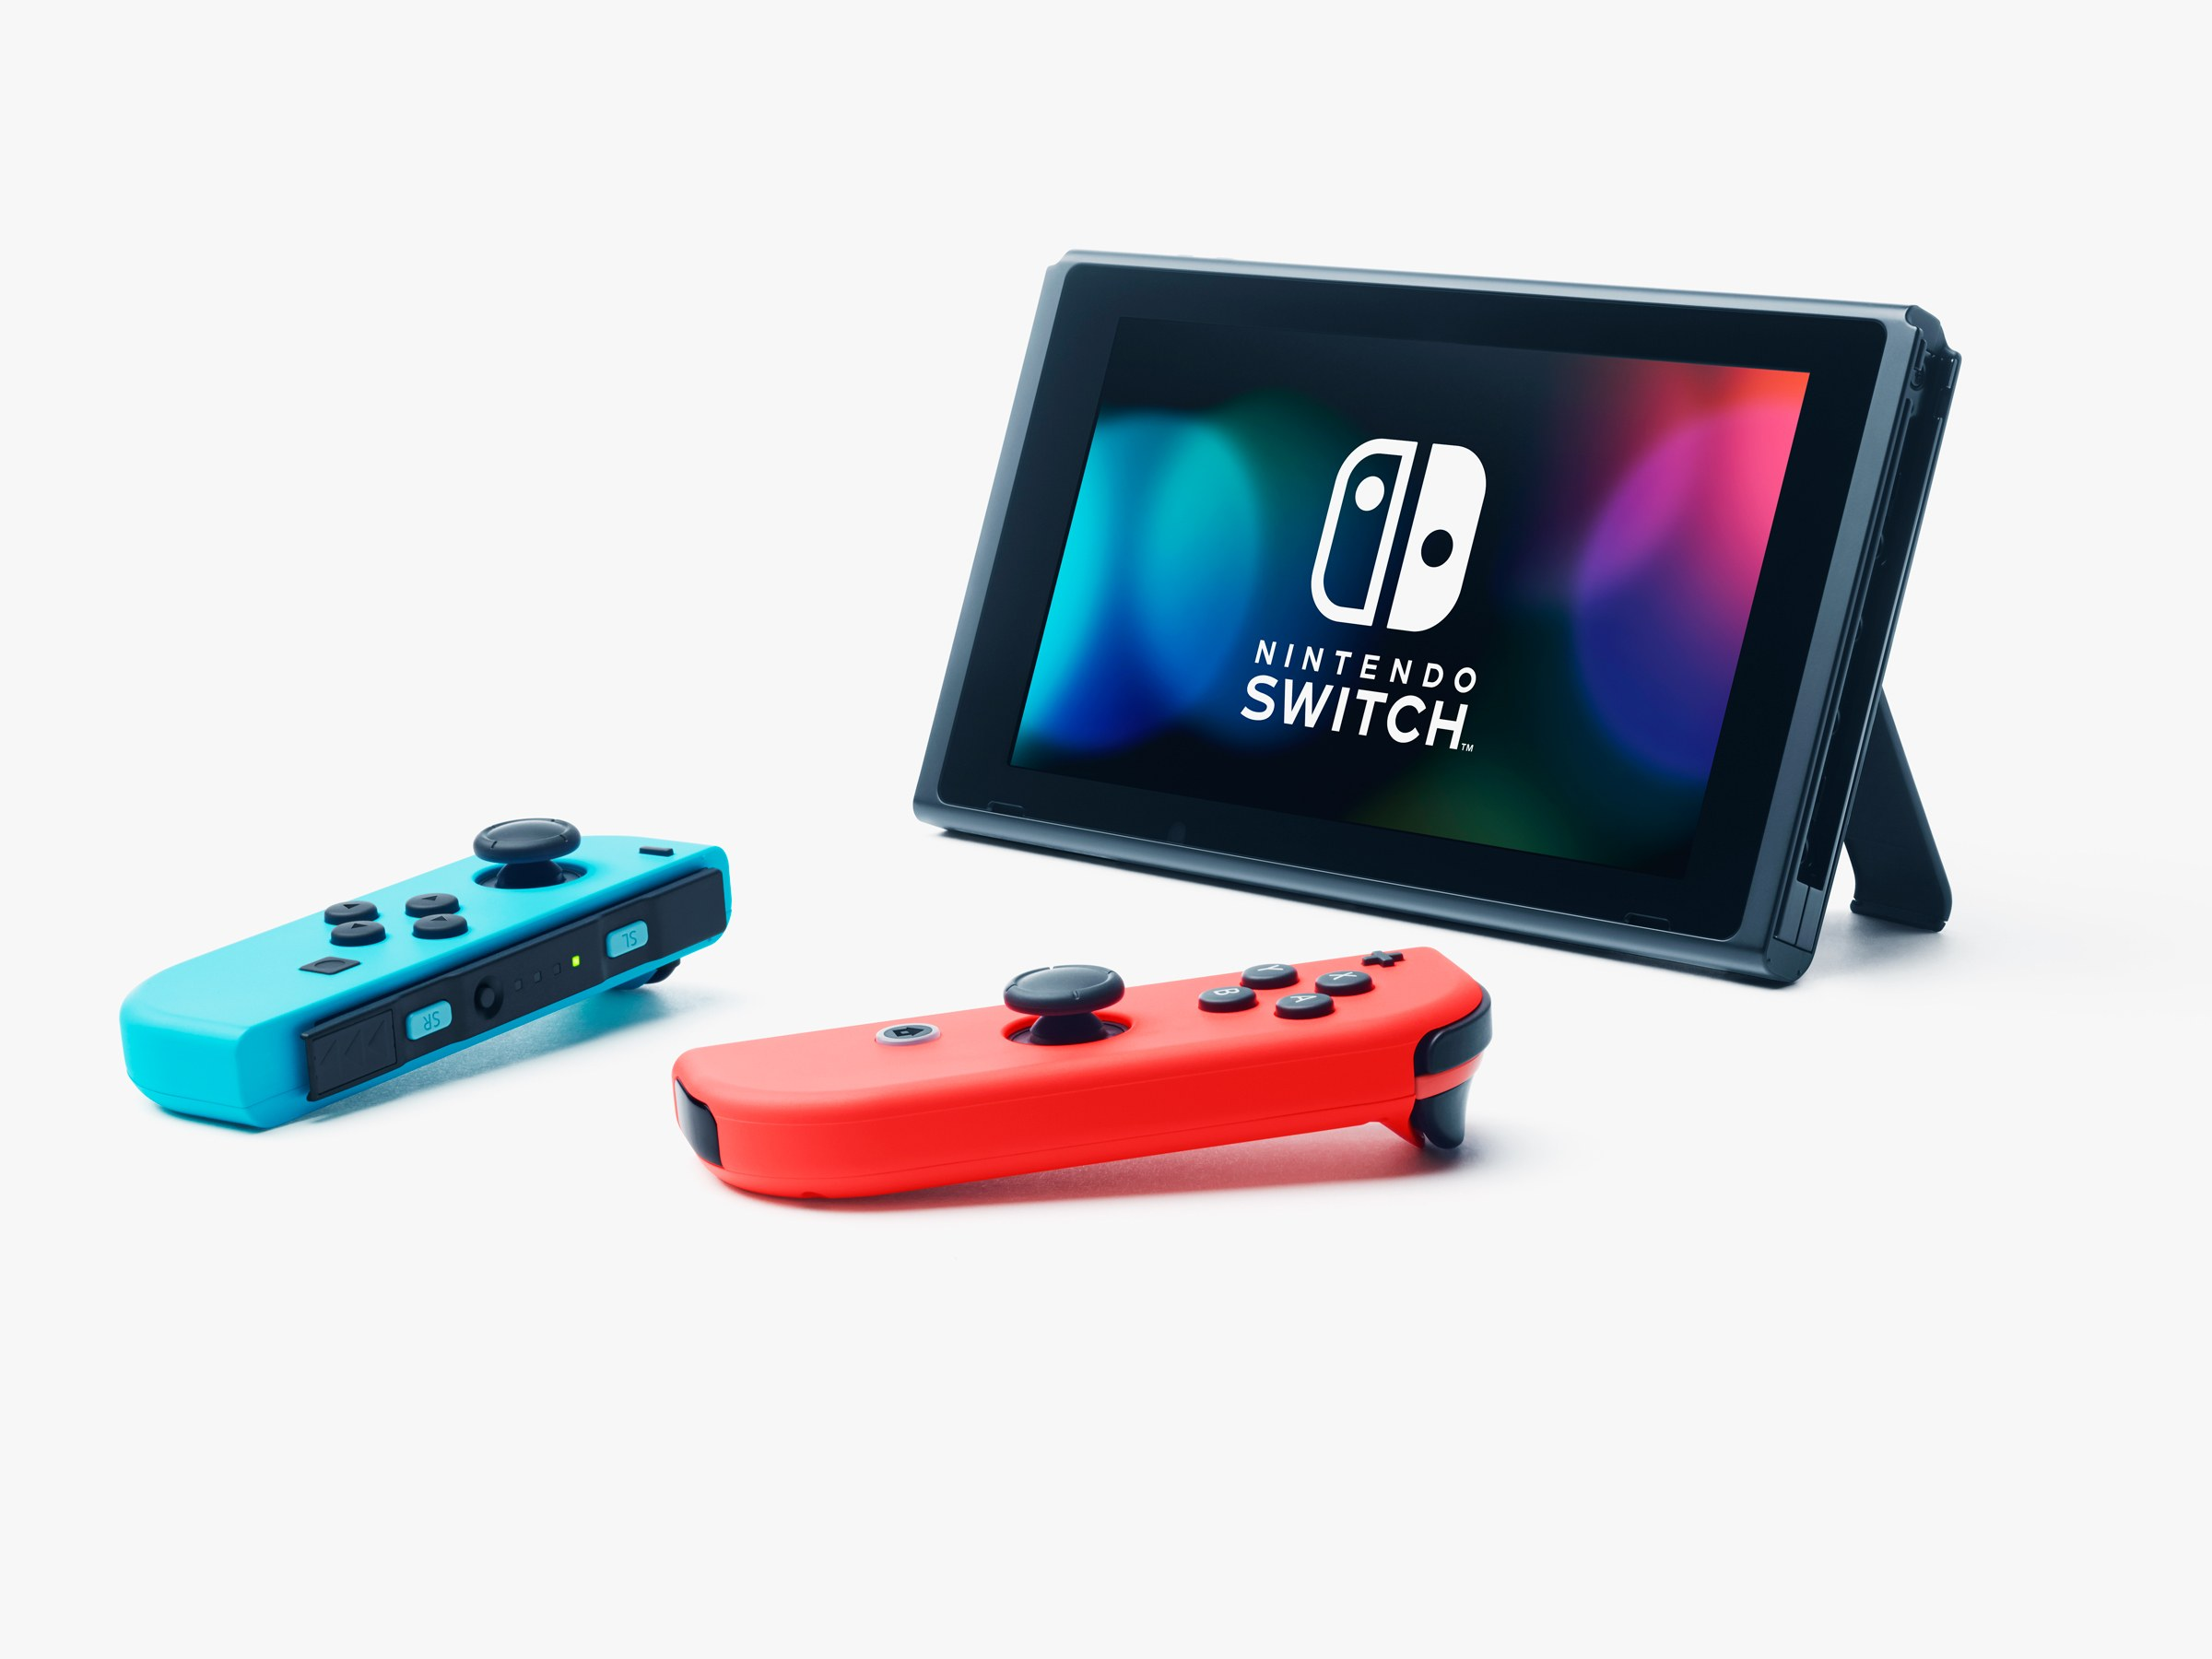 More powerful Nintendo Switch reportedly still in experimental stages